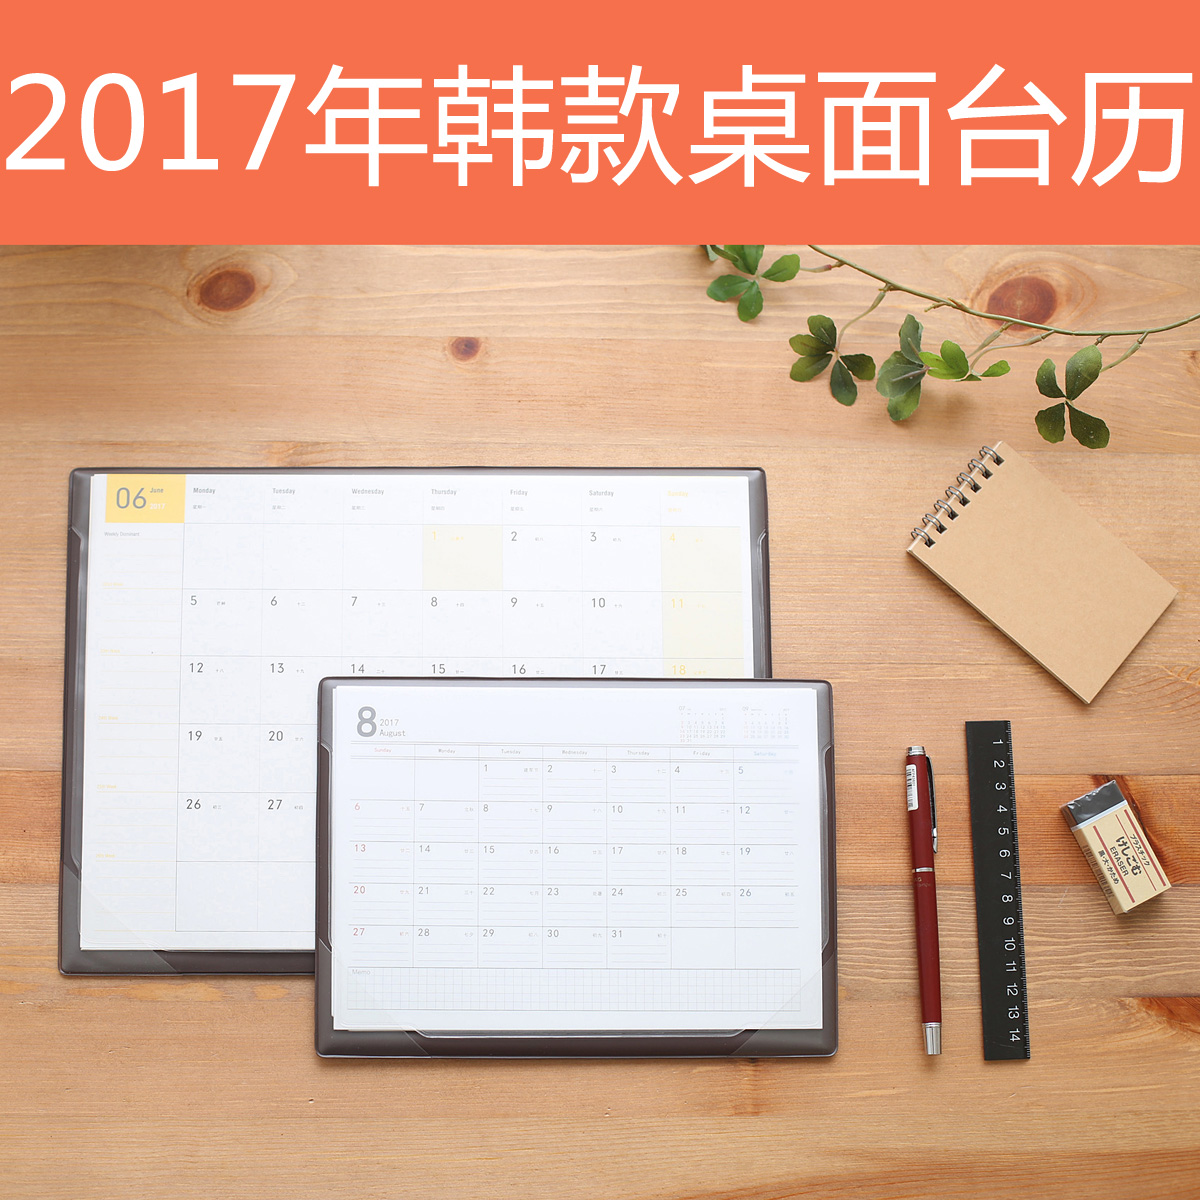 Letter dated 2017 from the office desktop notebook mouse pad mouse pad desk pad calendar desk pad business customized version